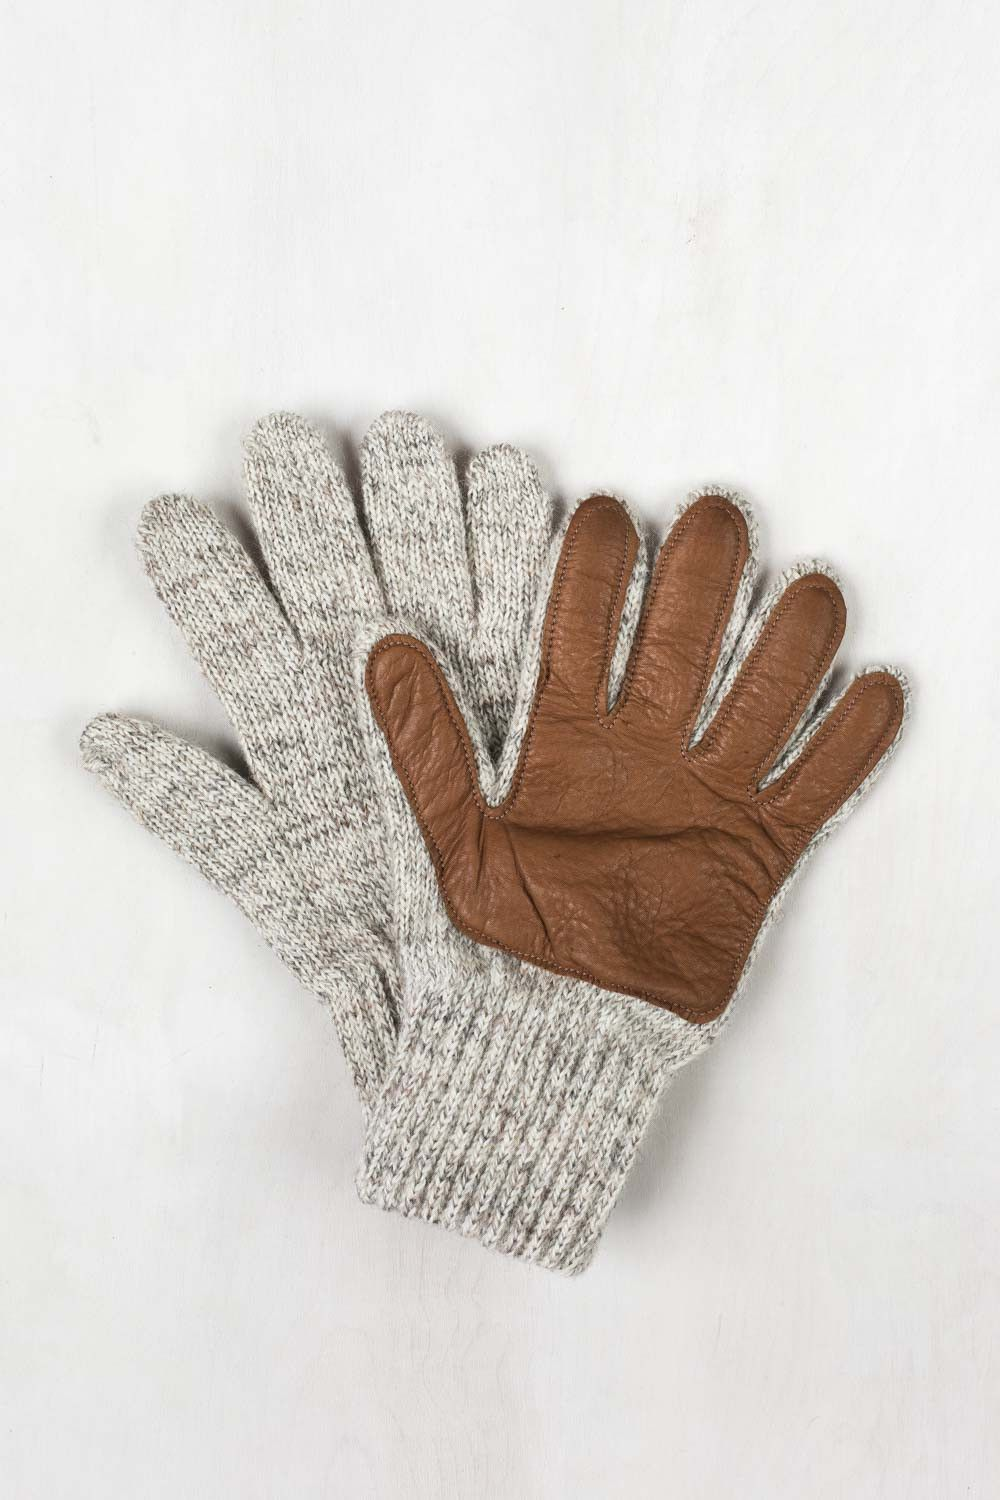 Back To Search Resultsapparel Accessories Genteel New Black Short Half Finger Fingerless Wool Knit Wrist Glove Winter Warm Gloves Workout For Women And Men Drop Shipping